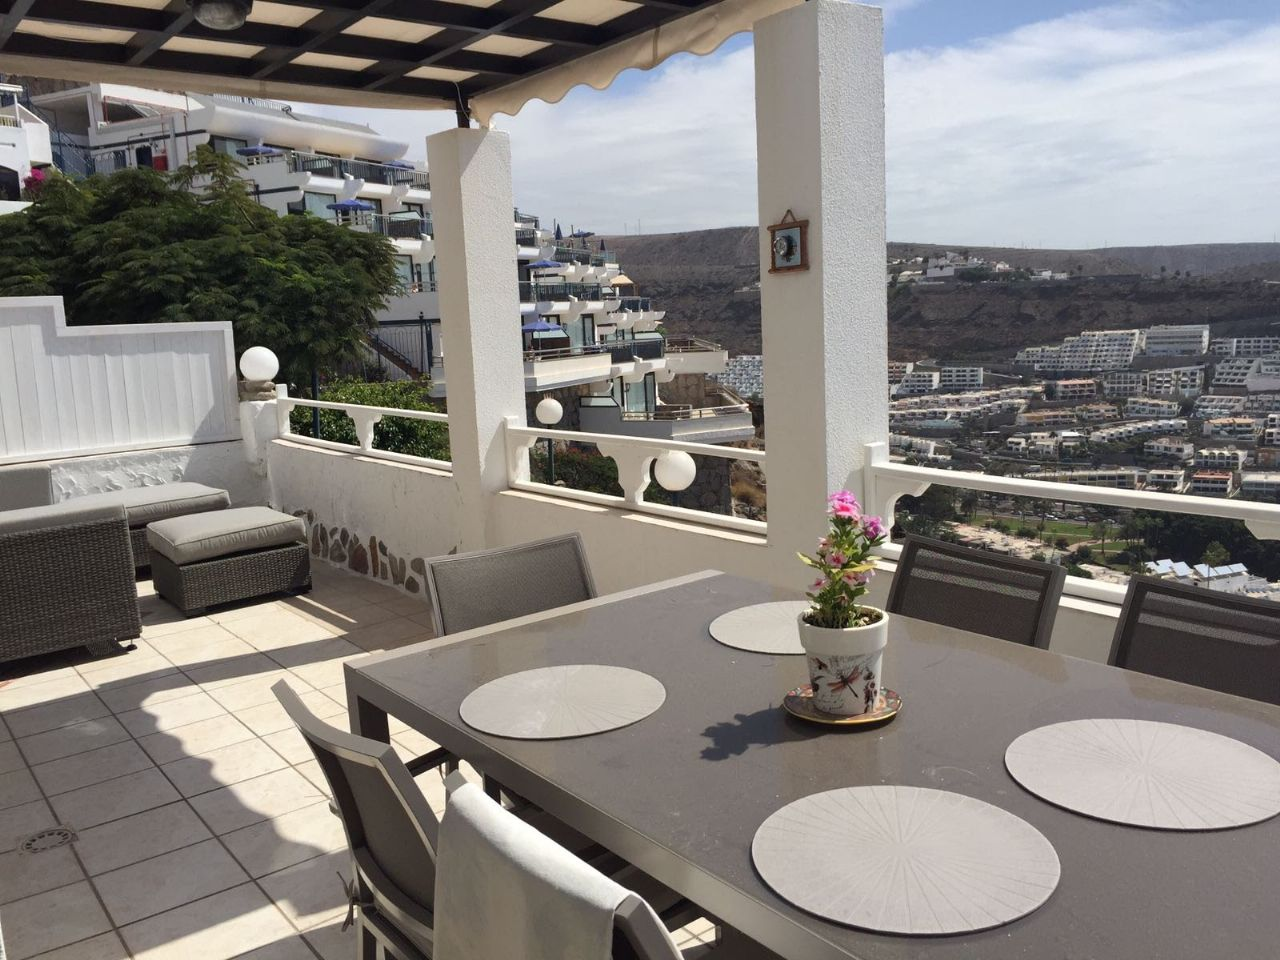 Apartment in Mogán, holiday rentals